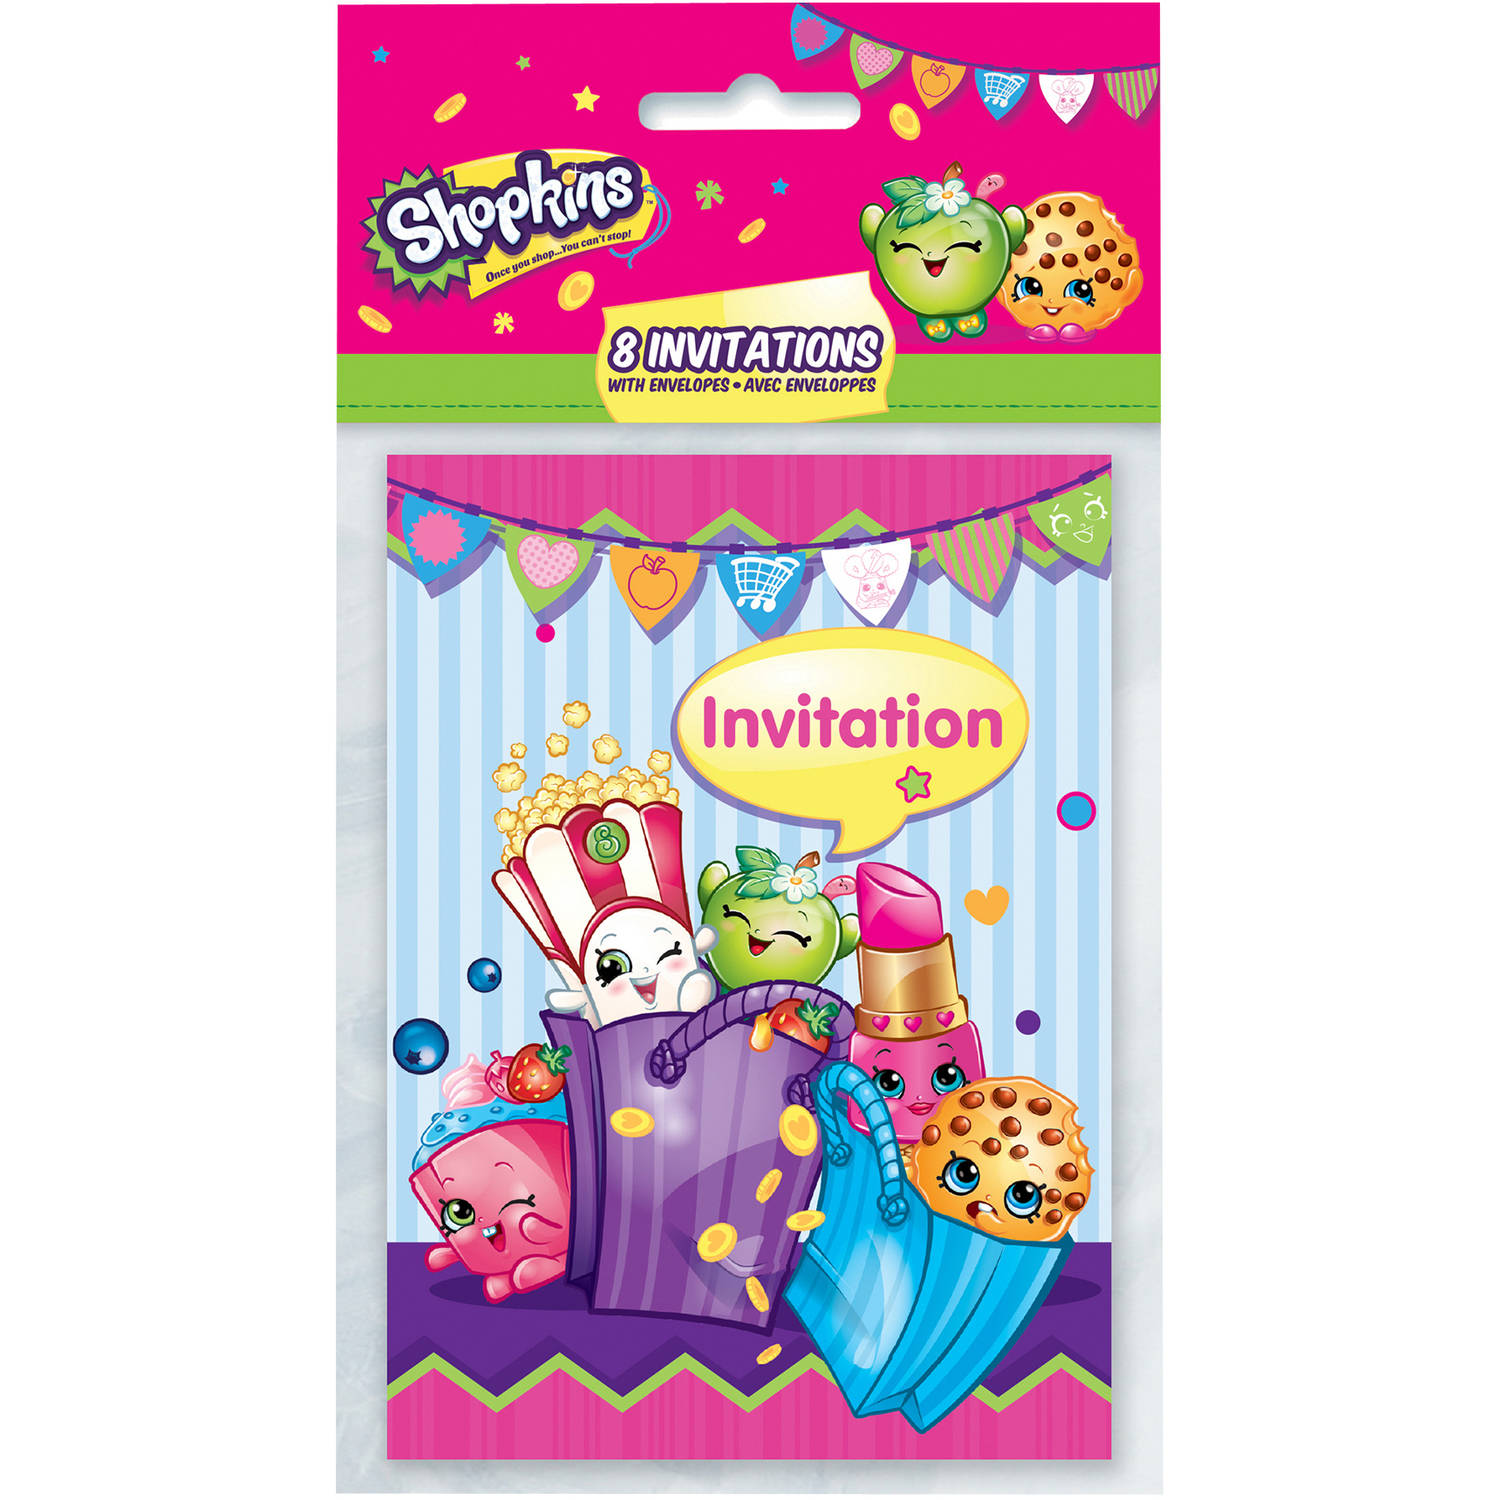 shopkins invitations 8ct walmart com